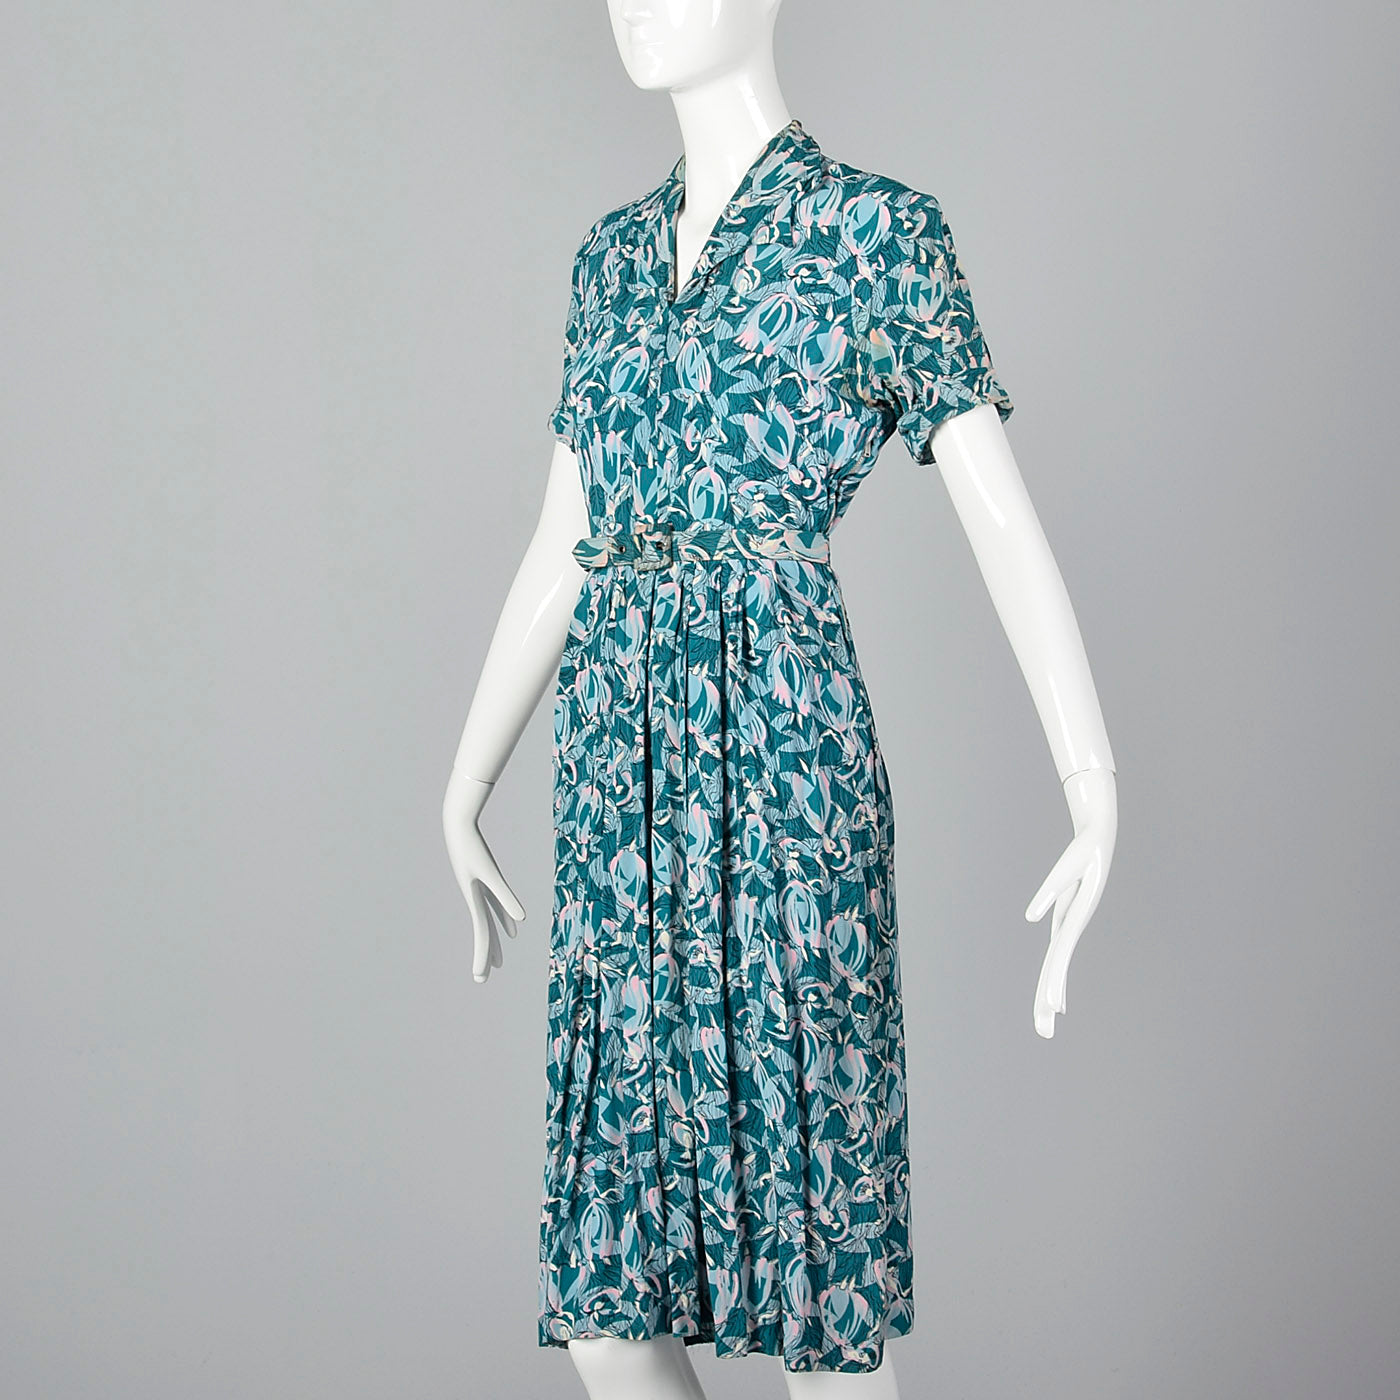 1940s Rayon Dress in Novelty Dancing Ladies Print